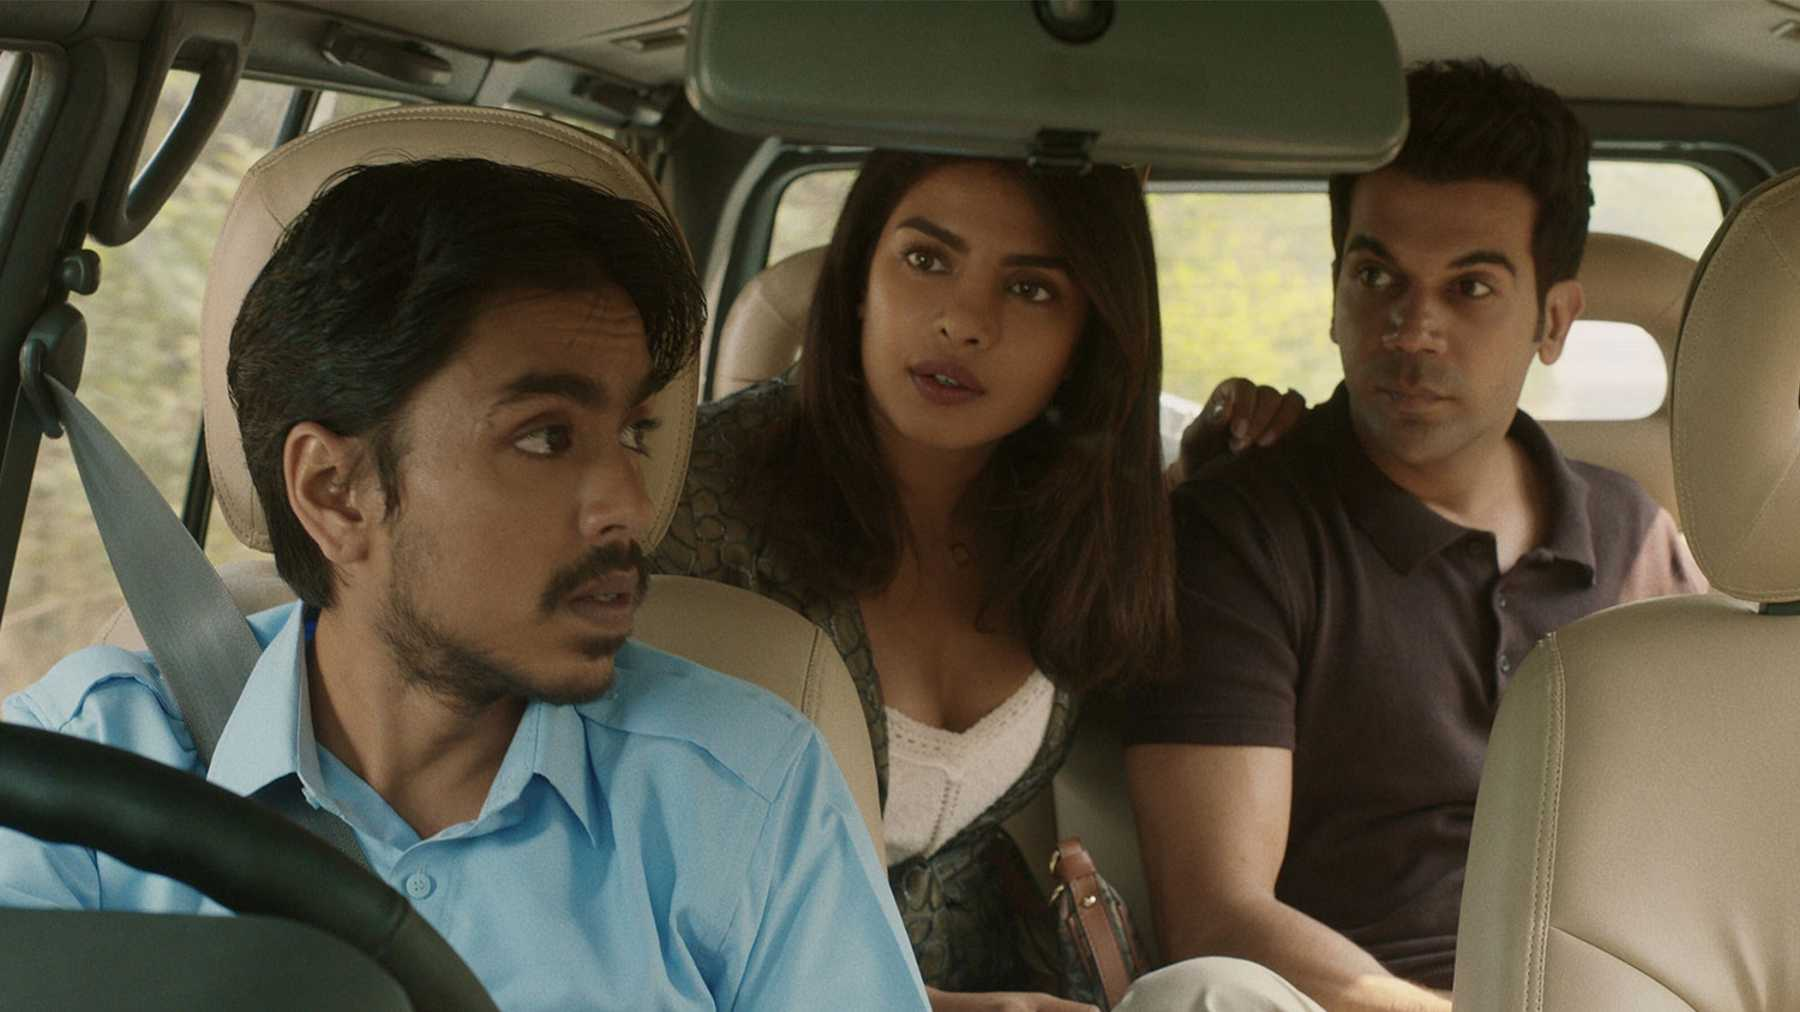 Rao is a great presence as the master that Balram follows like a dog, and Chopra-Jonas lights up the screen with both her beauty and the sophistication of her character.